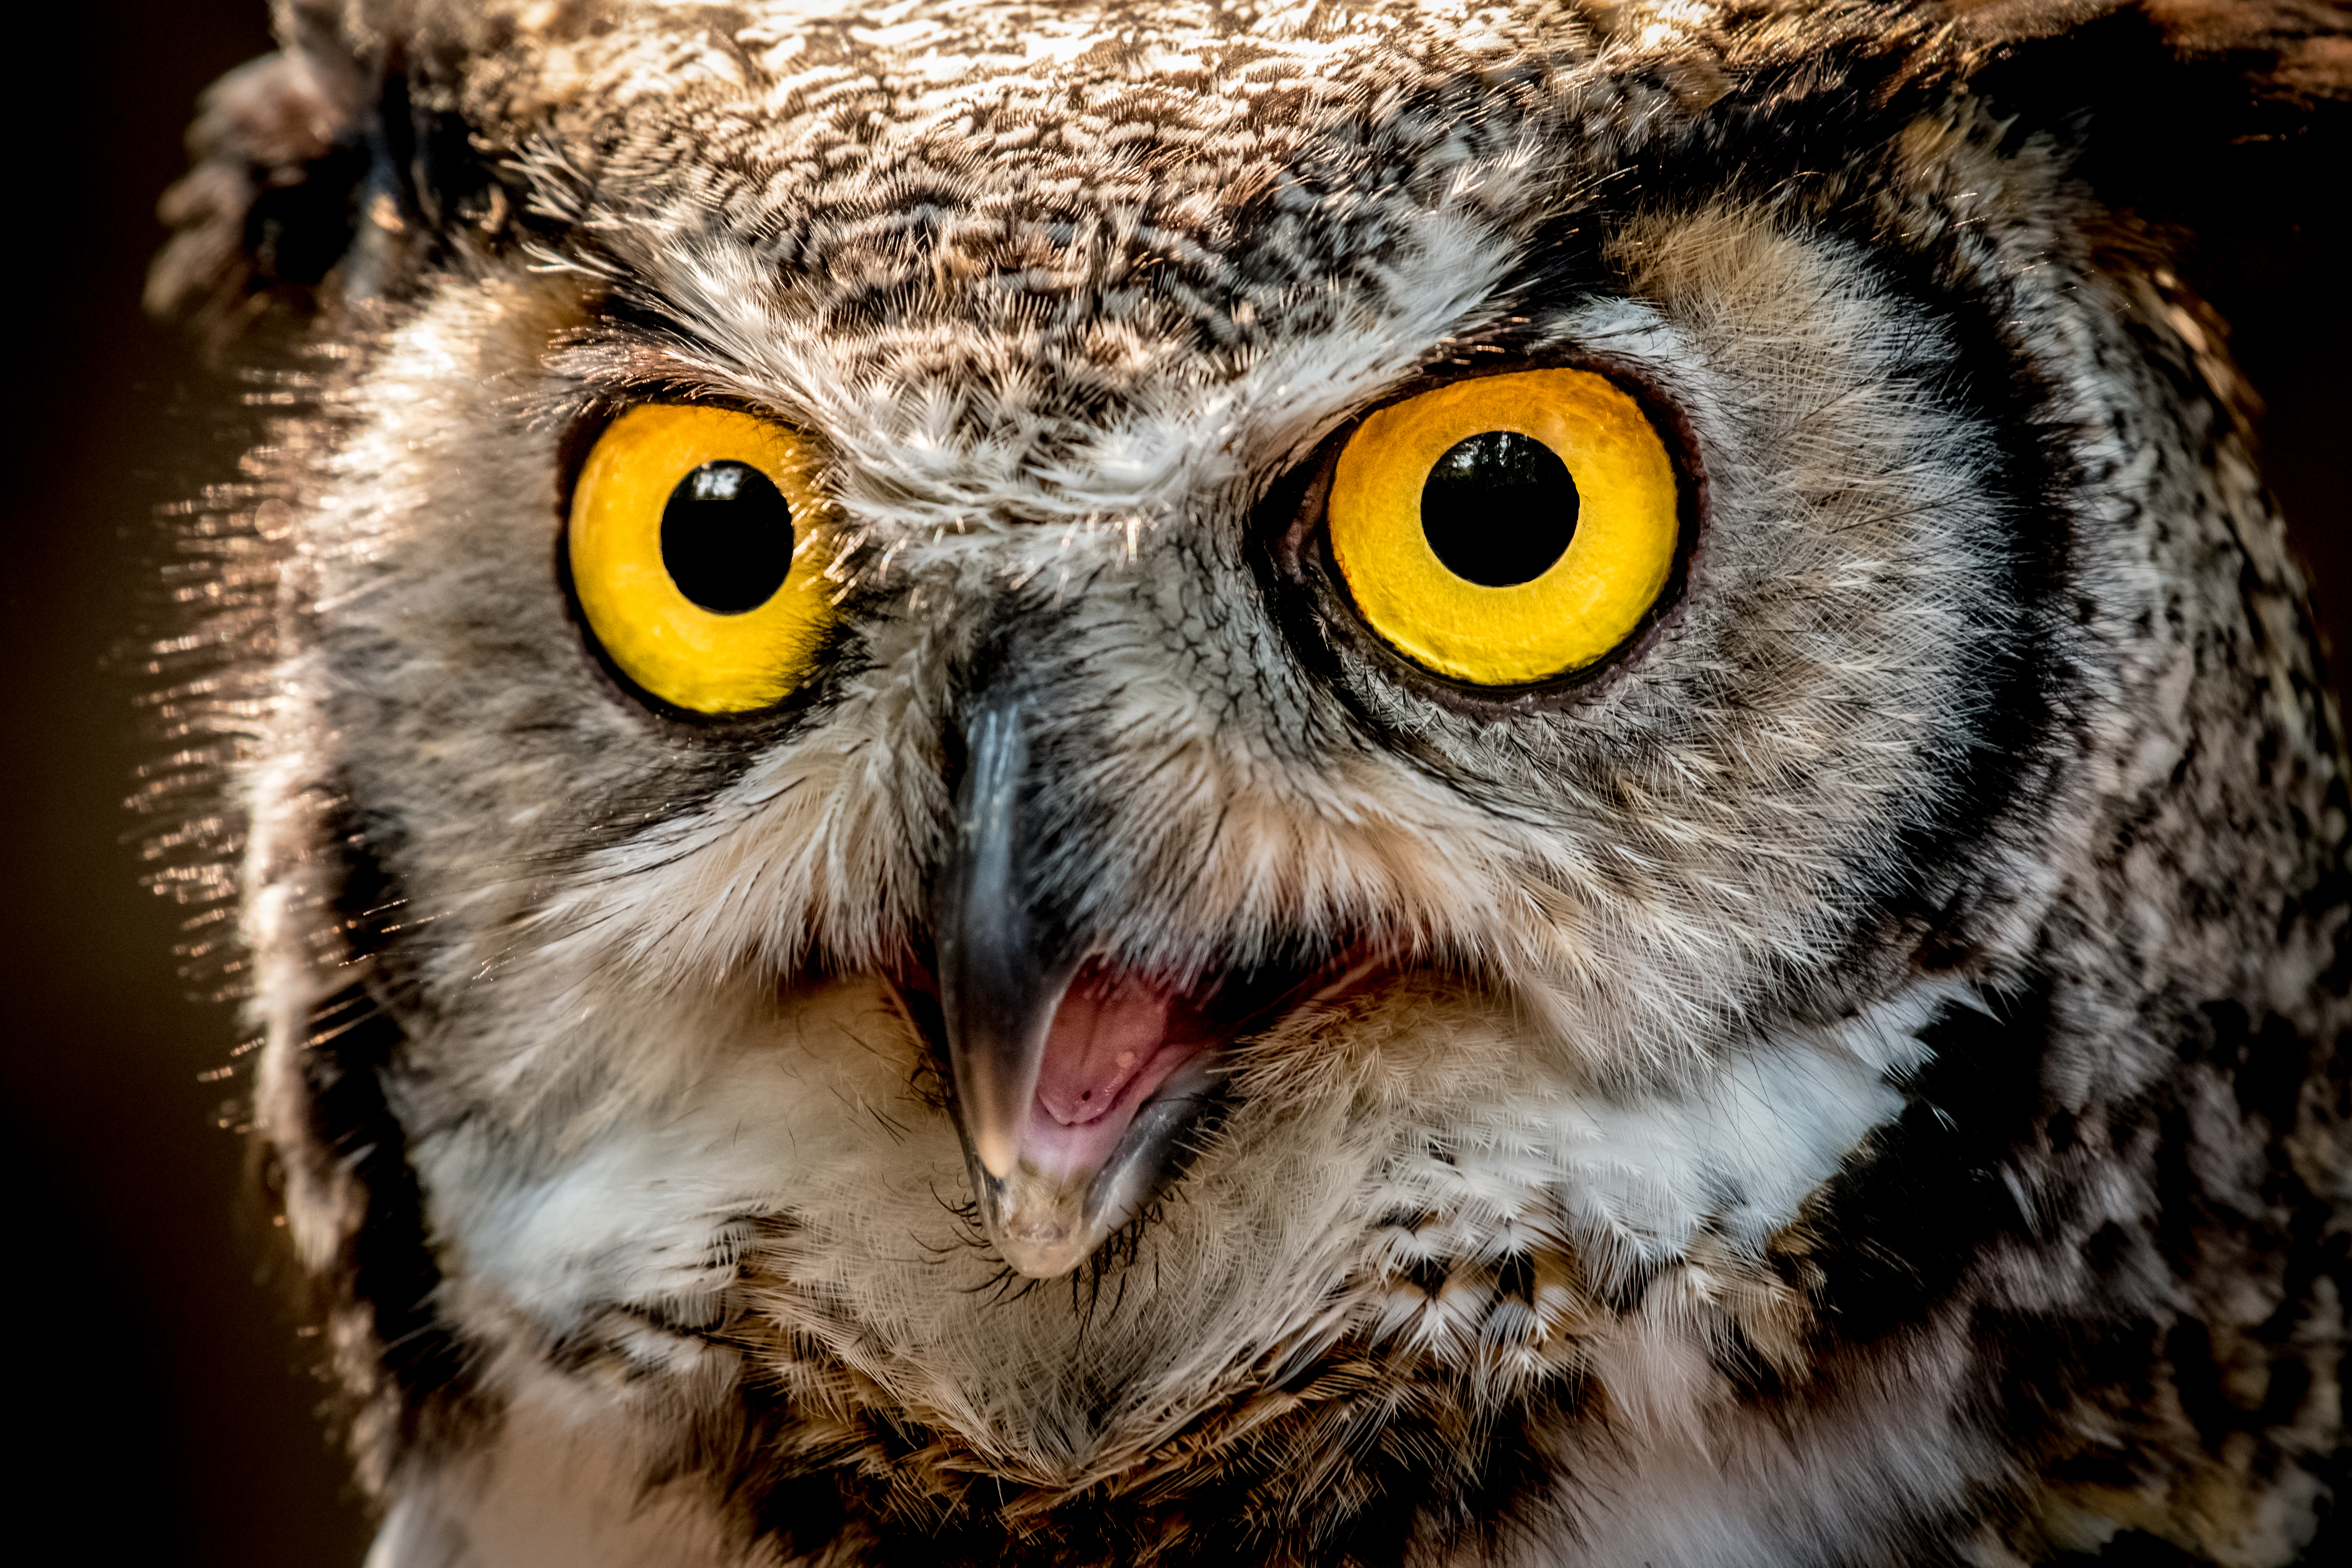 Hootsuite nabs $50M in growth capital for its social media management platform, passes 16M customers